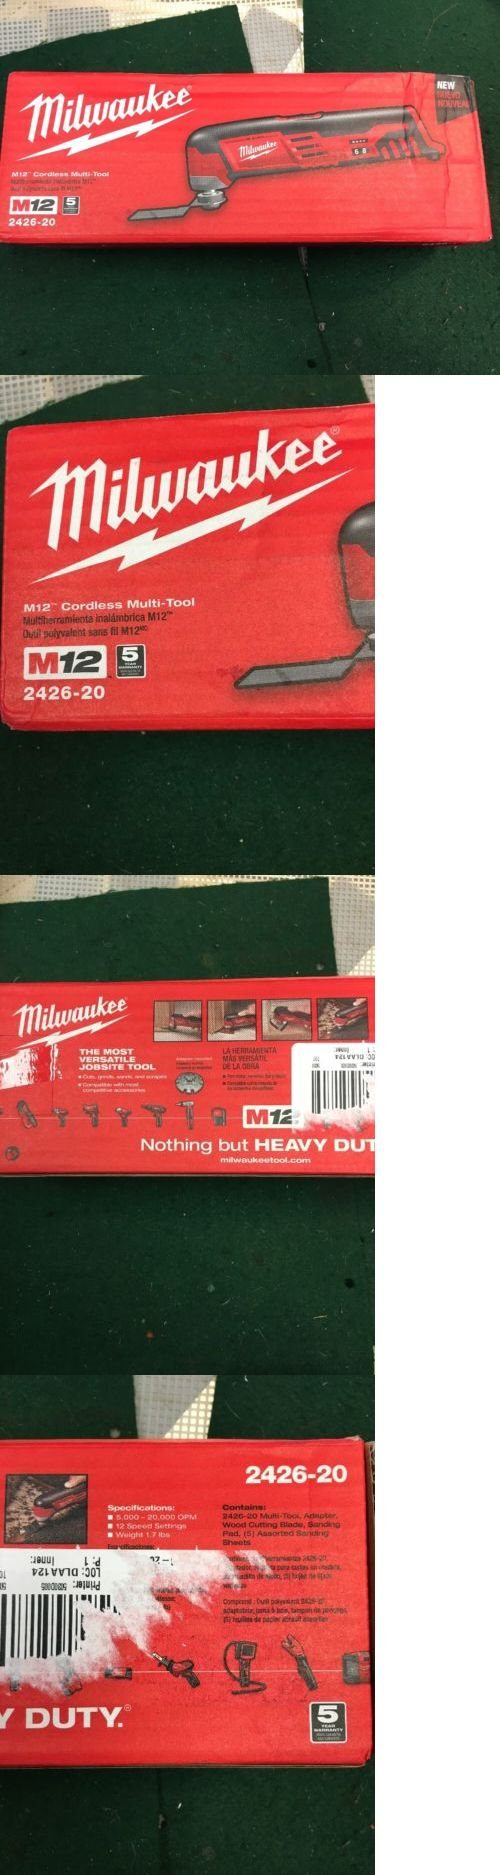 Other Power Tools 632: Milwaukee M-12 Cordless Multi-Tool Model 2426-20 -> BUY IT NOW ONLY: $60 on eBay!